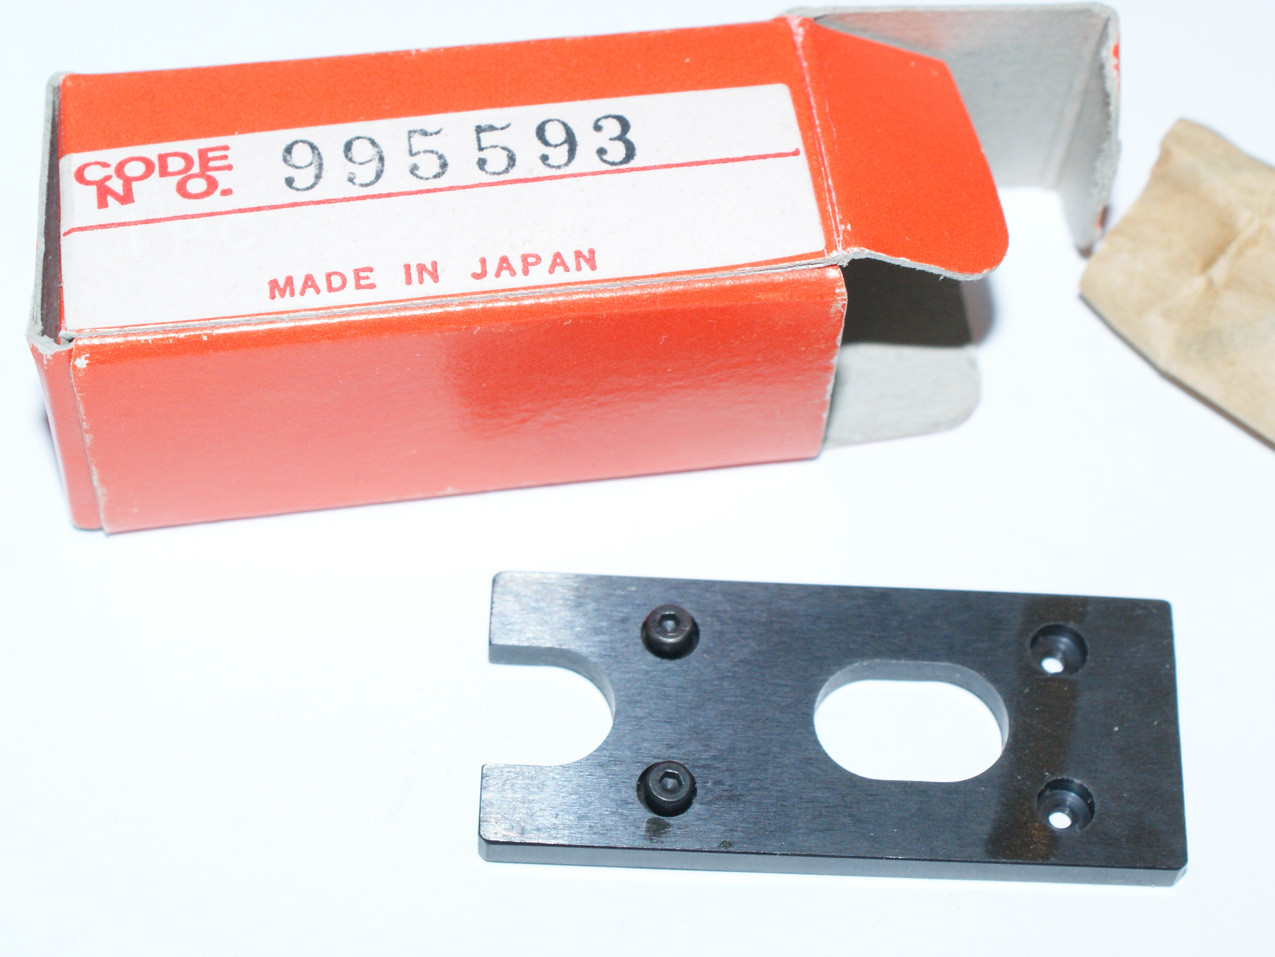 Mitutoyo 995593 height Gage Accessory